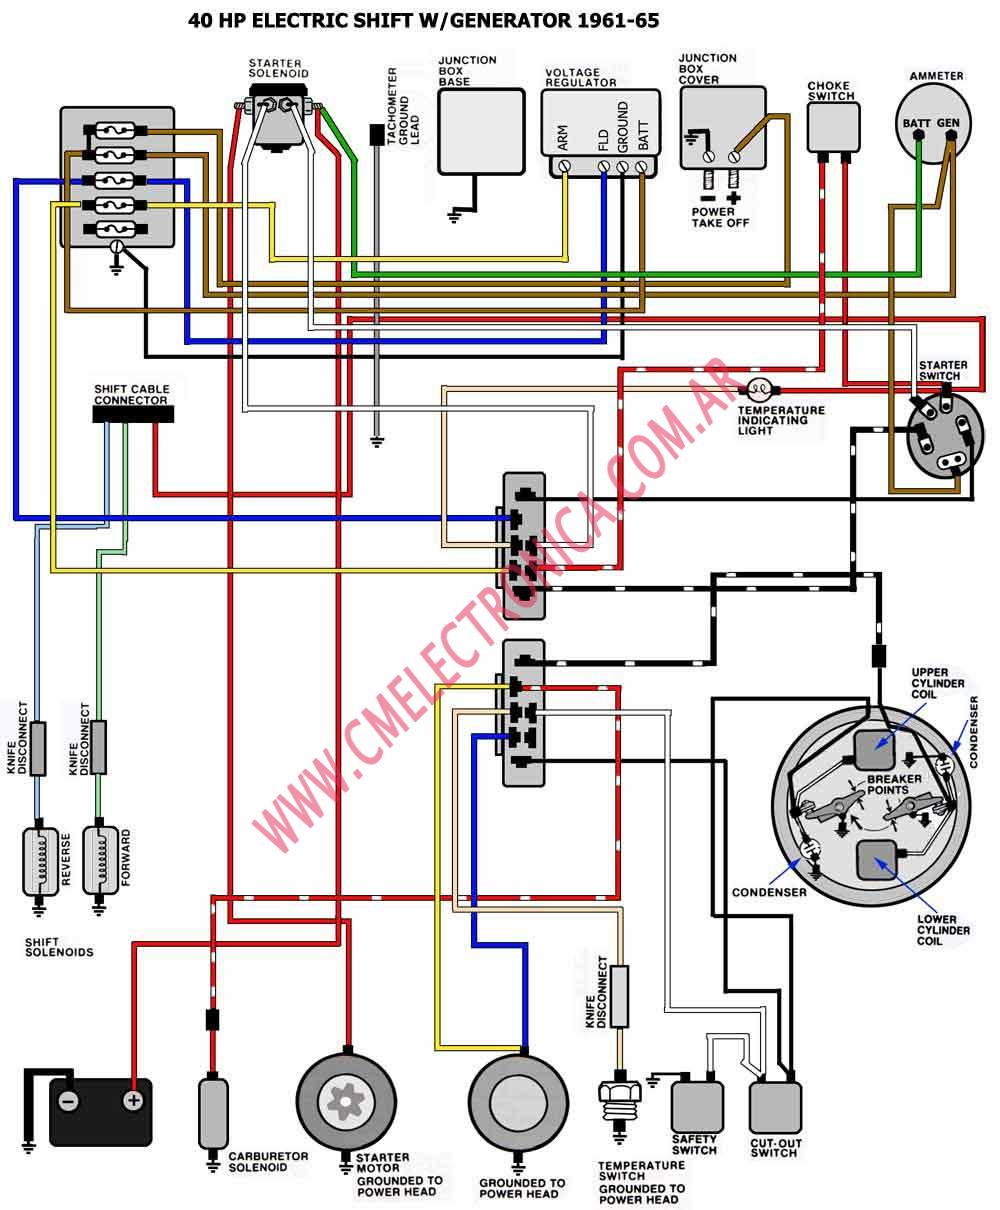 Diagrama Evinrude Johnson 61 66 40hp Yamaha Wr125x Wiring Diagram